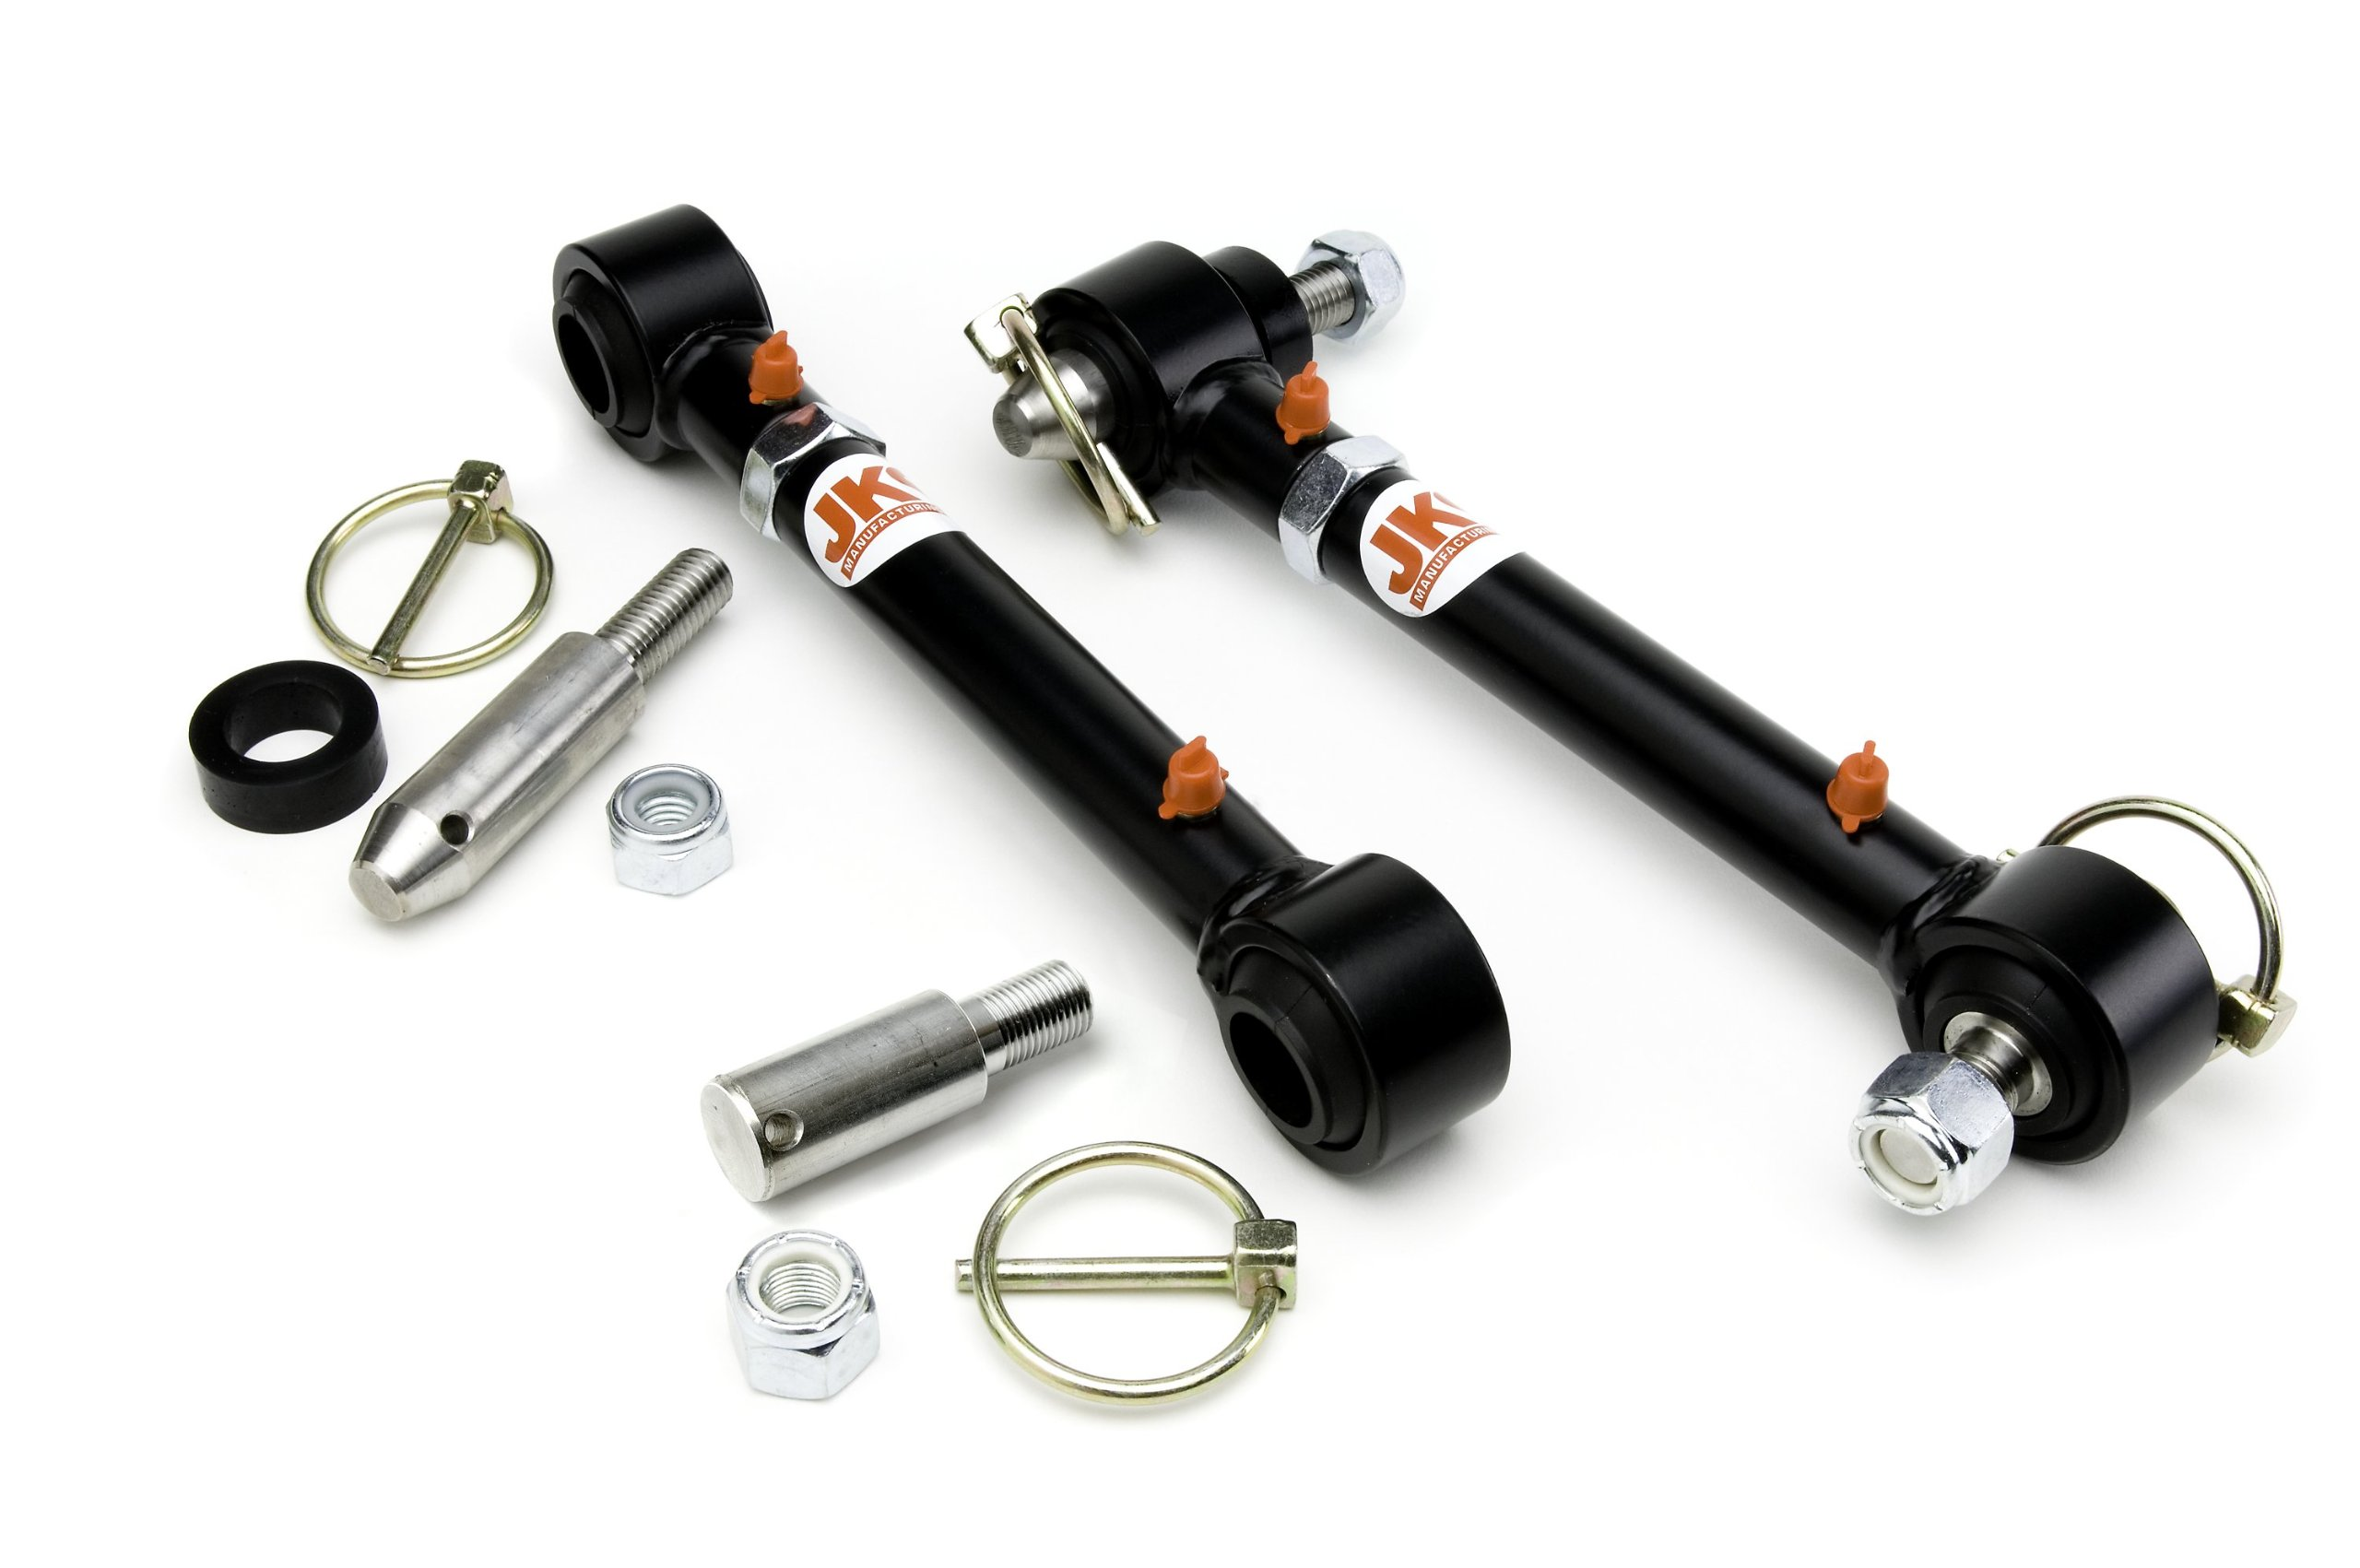 JKS 2034 Front Swaybar Quicker Disconnect System for Jeep JK by JKS